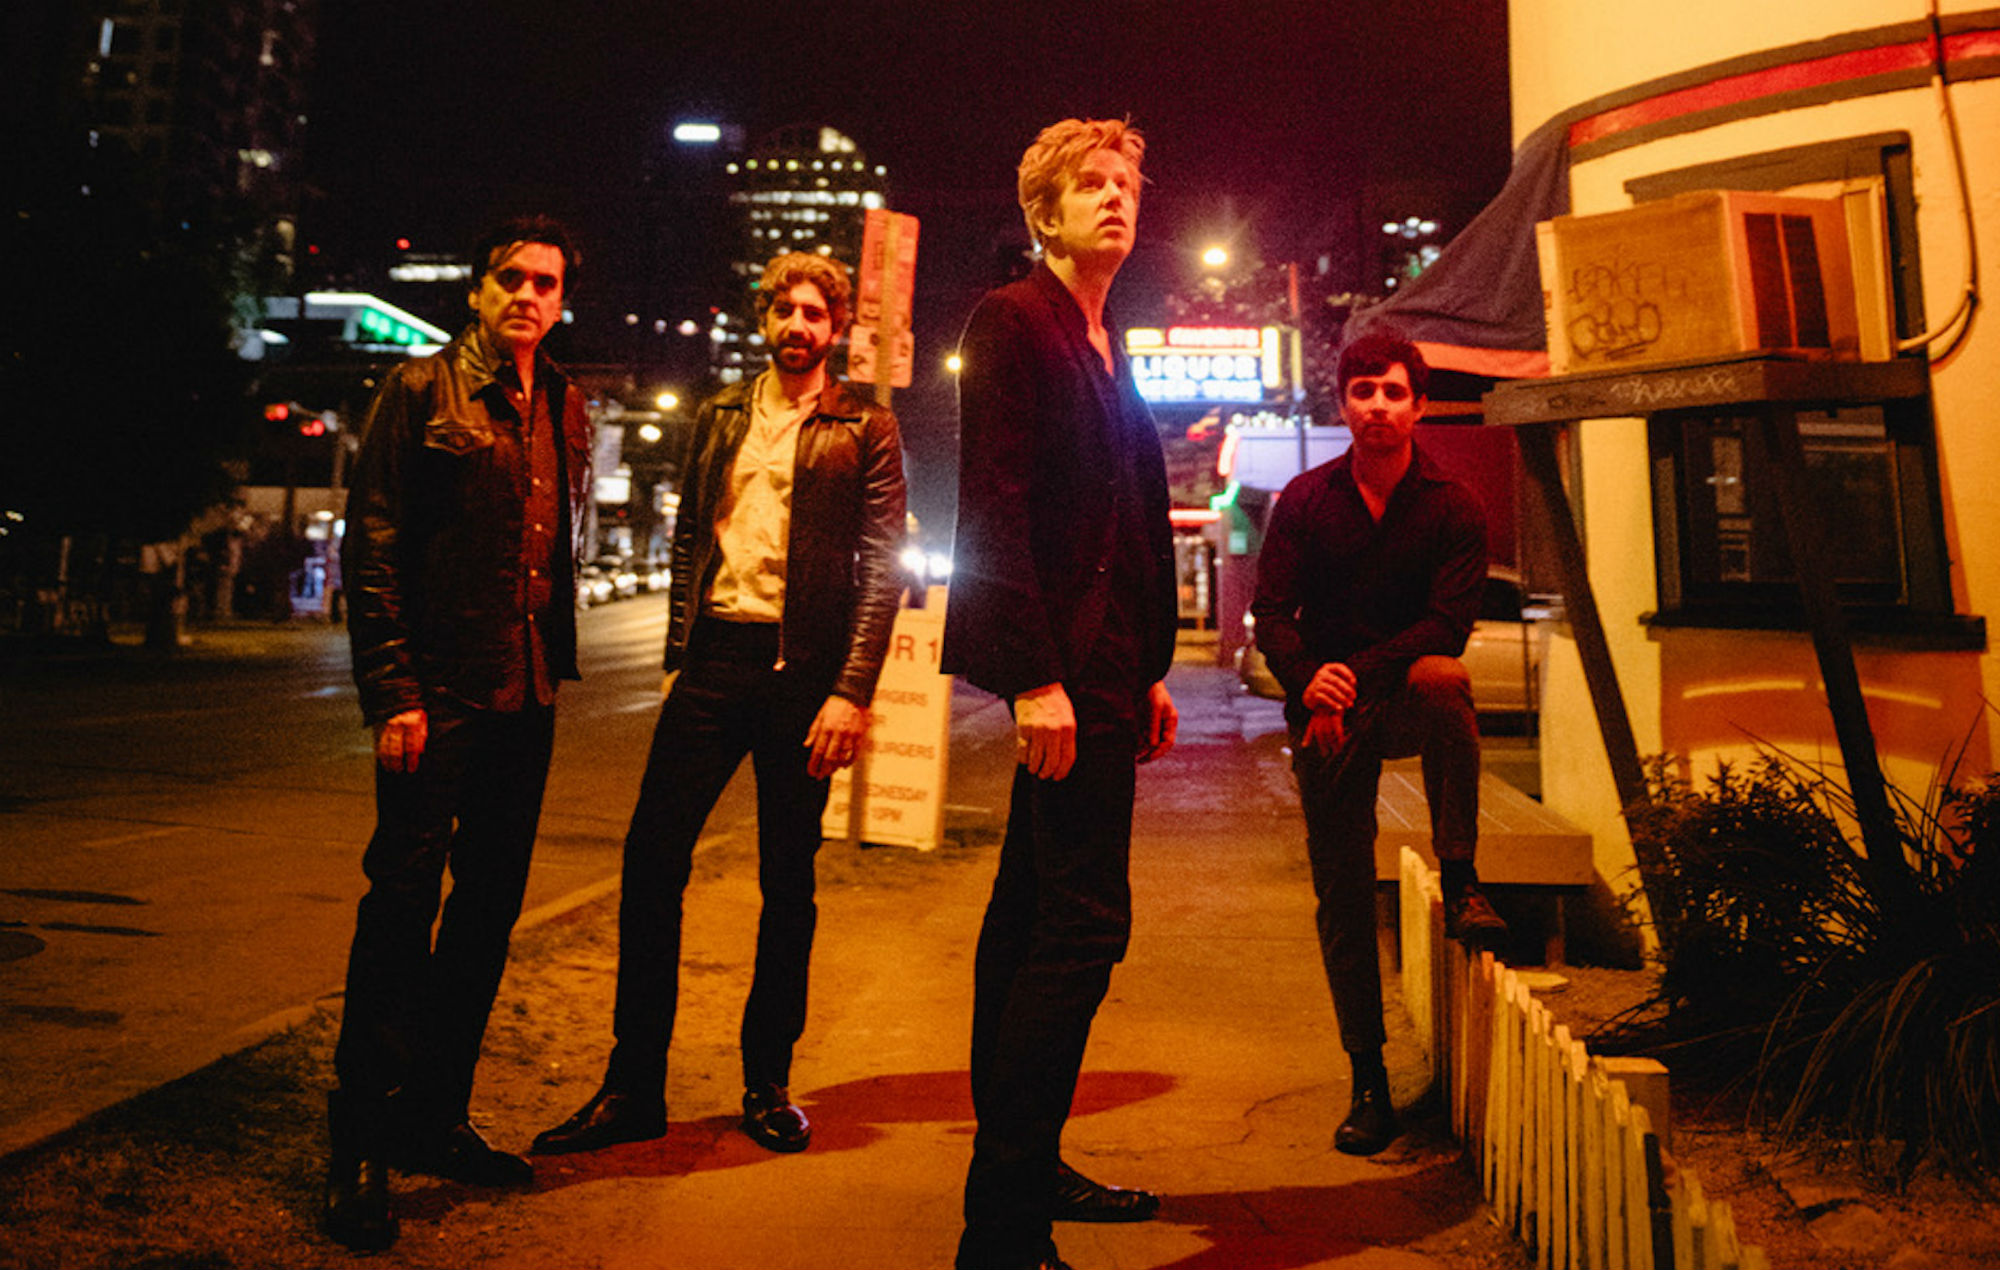 Spoon announce special reissue of their back catalogue